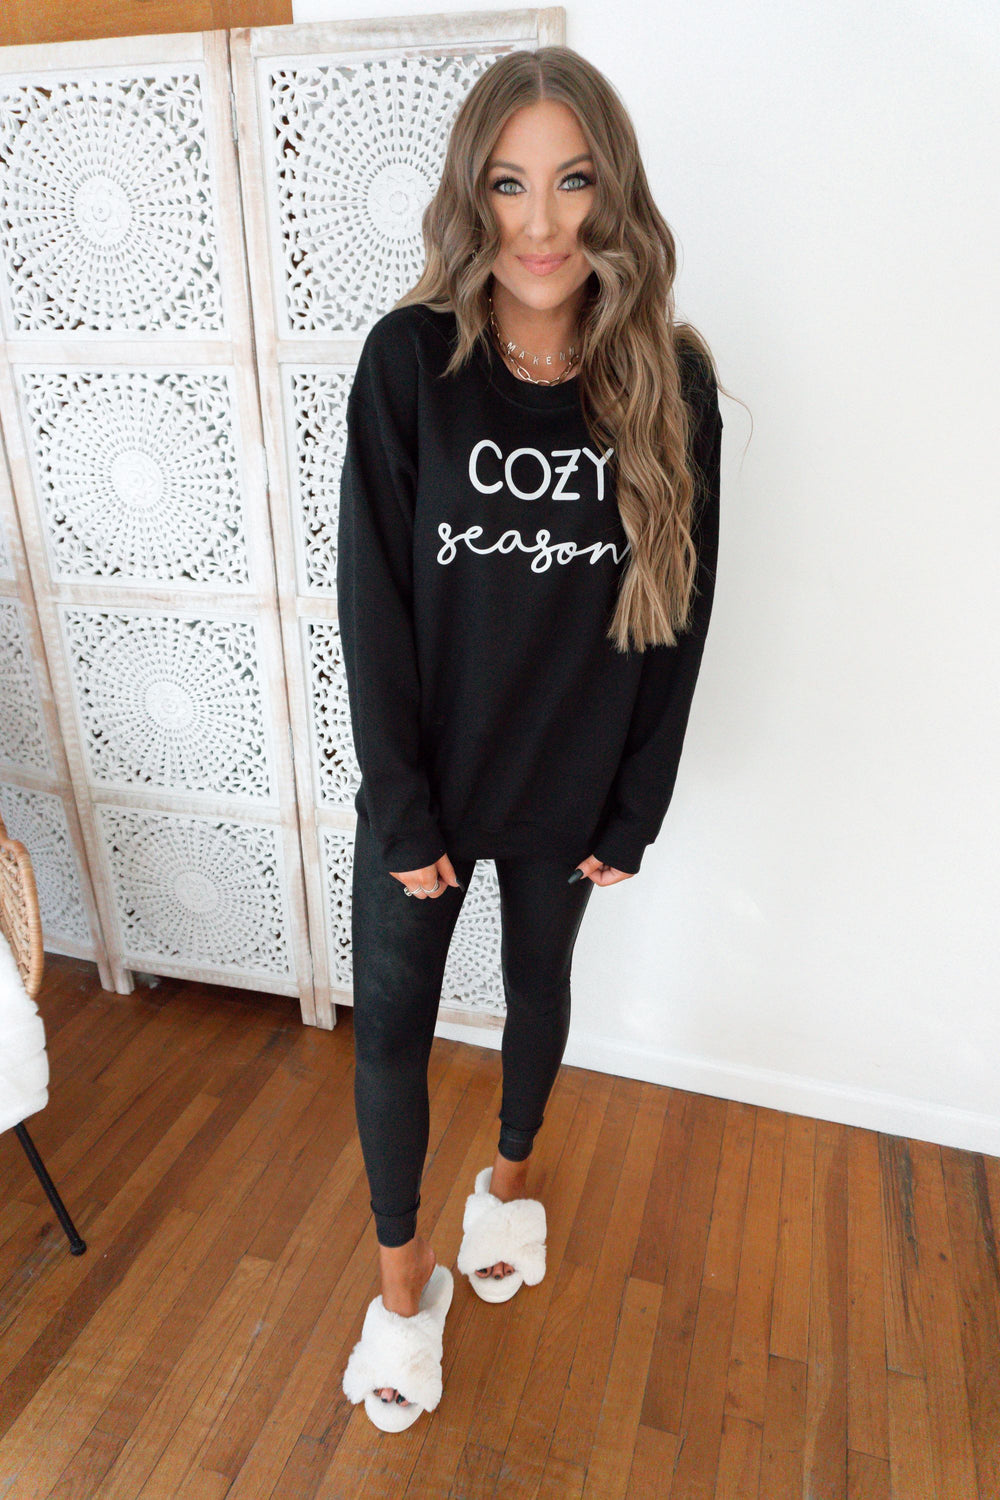 Cozy Season Crewneck Inspired by Makenna Christine